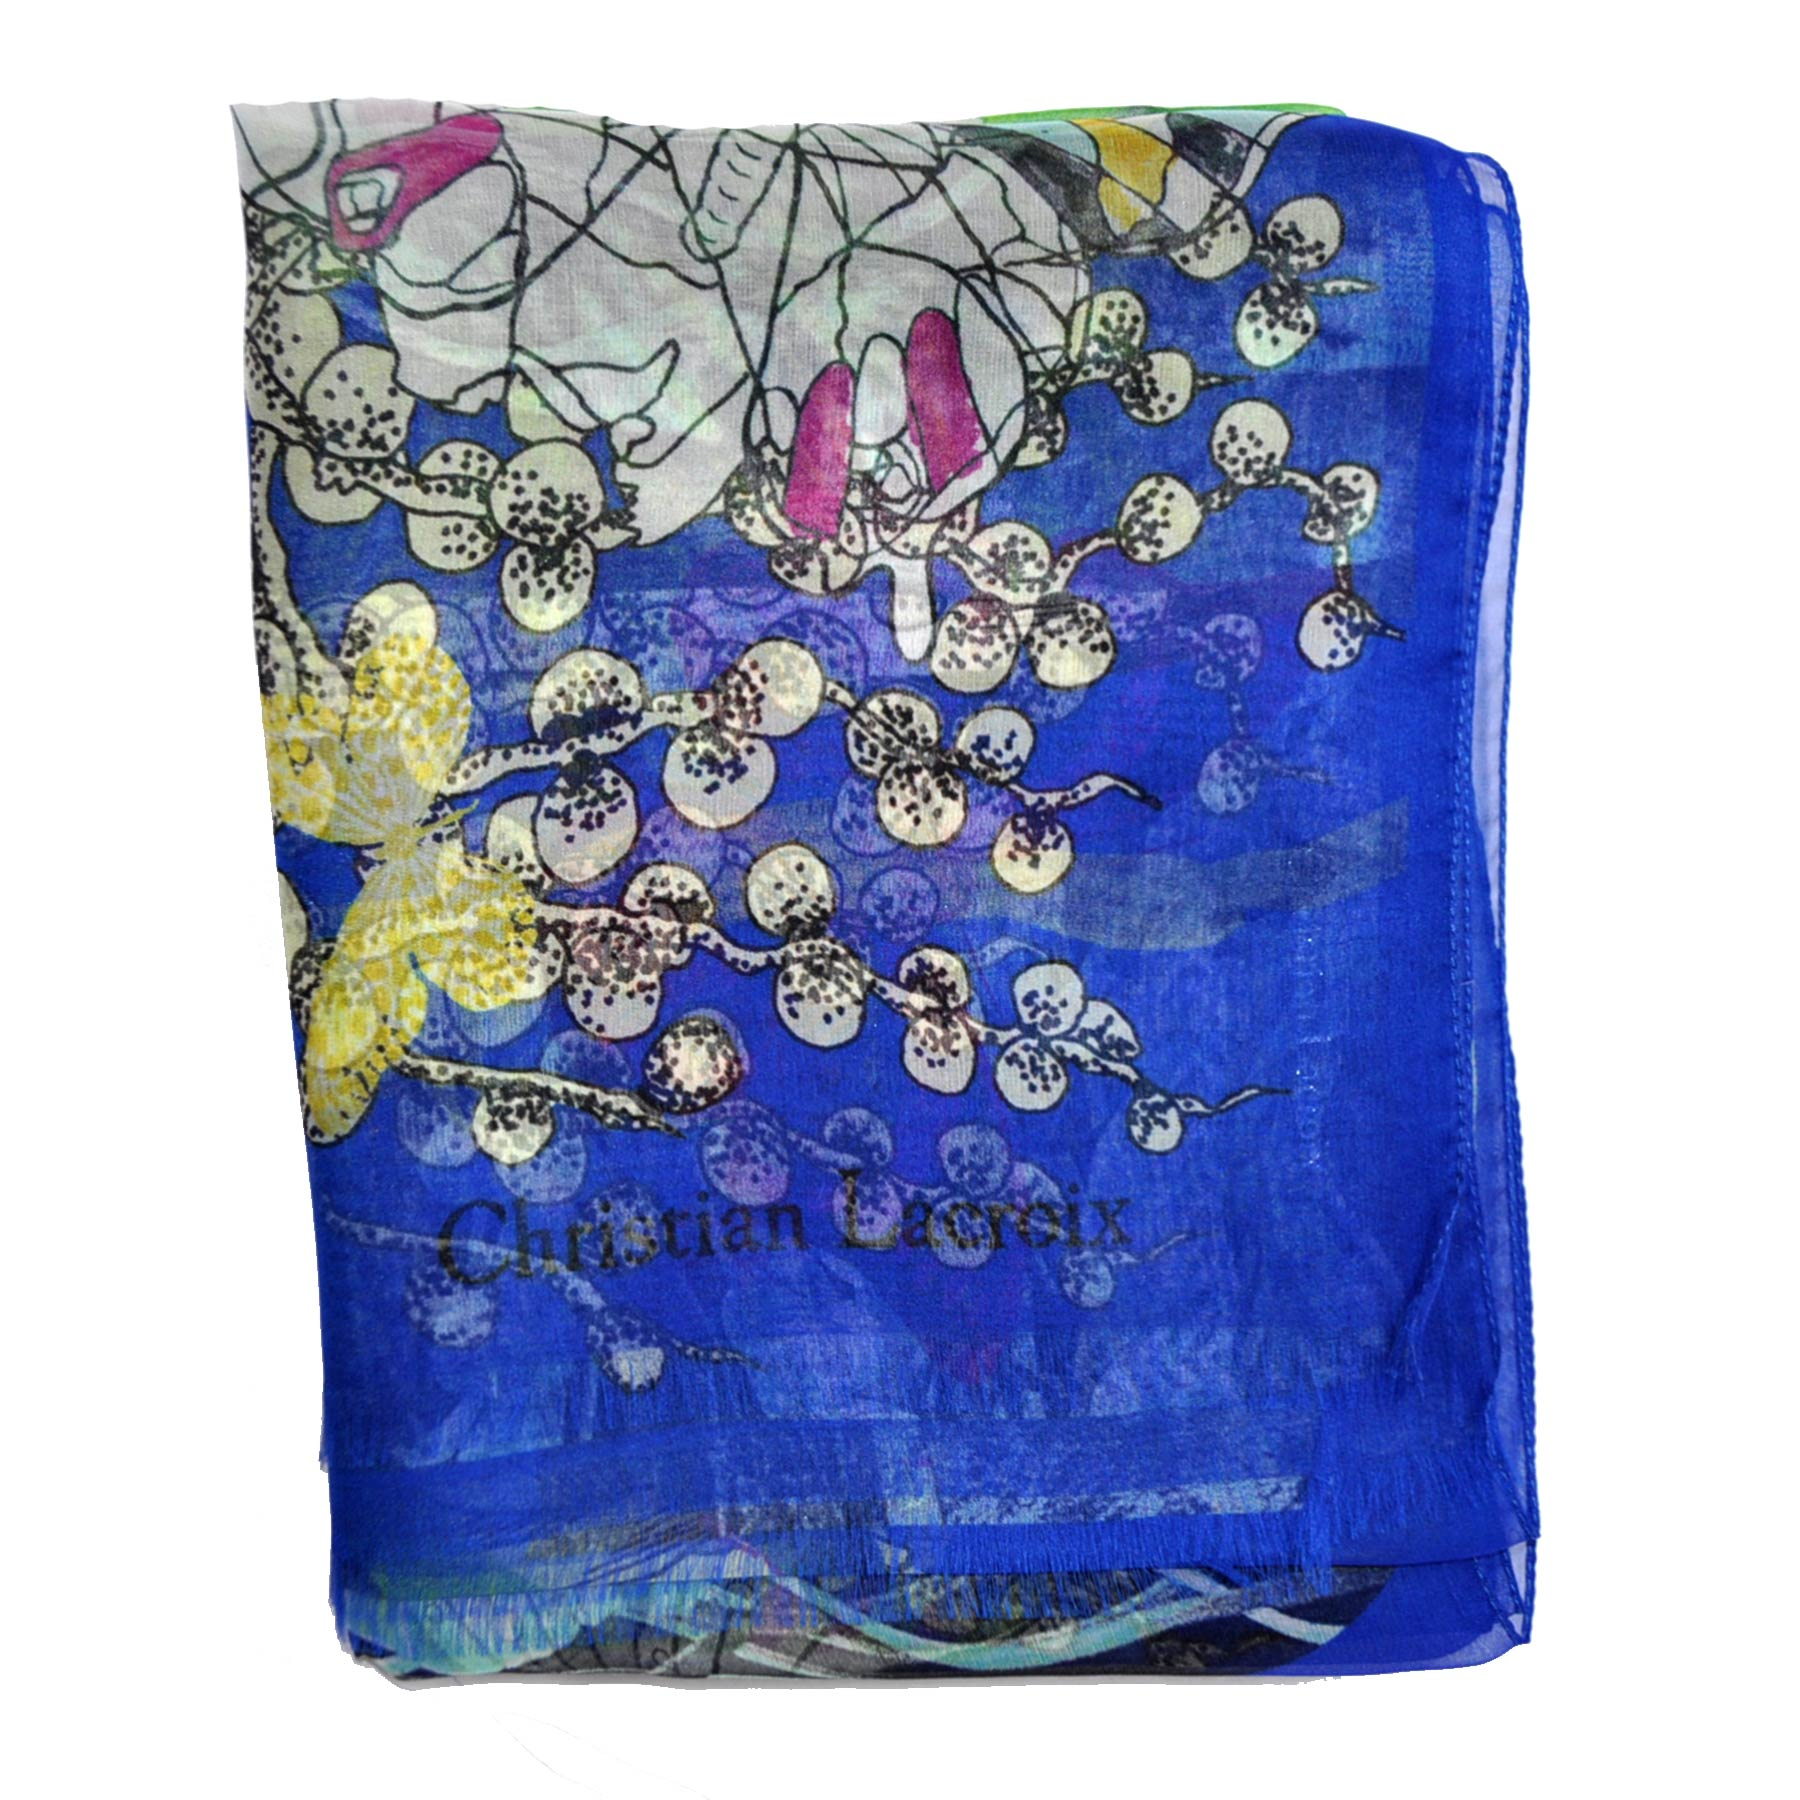 Christian Lacroix Scarf Royal Blue Green Floral - Chiffon Silk Shawl